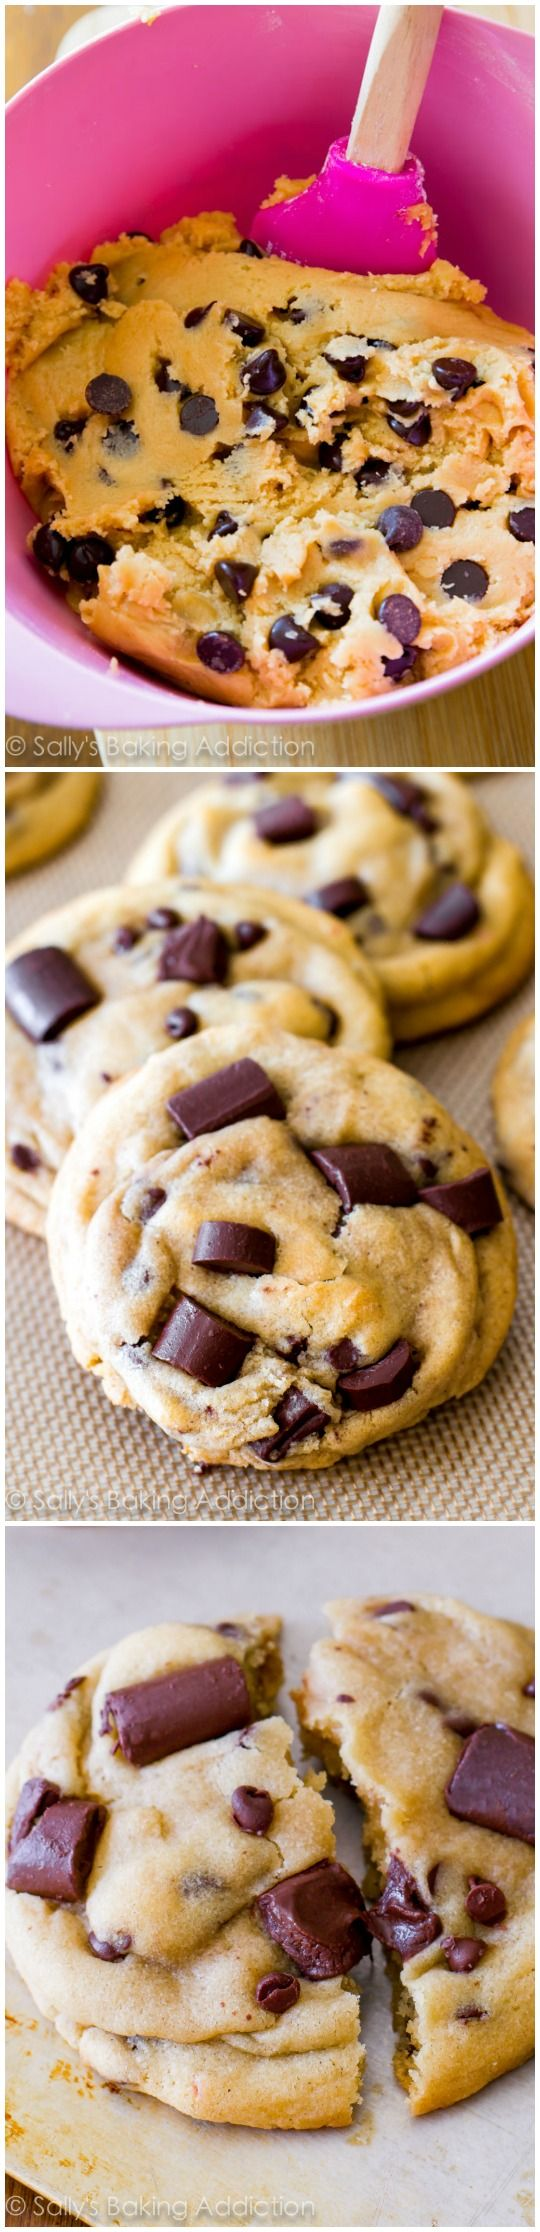 Chewy Chocolate Chunk Cookies have been pinned on Pinterest over 1 MILLION times. My most popular recipe!